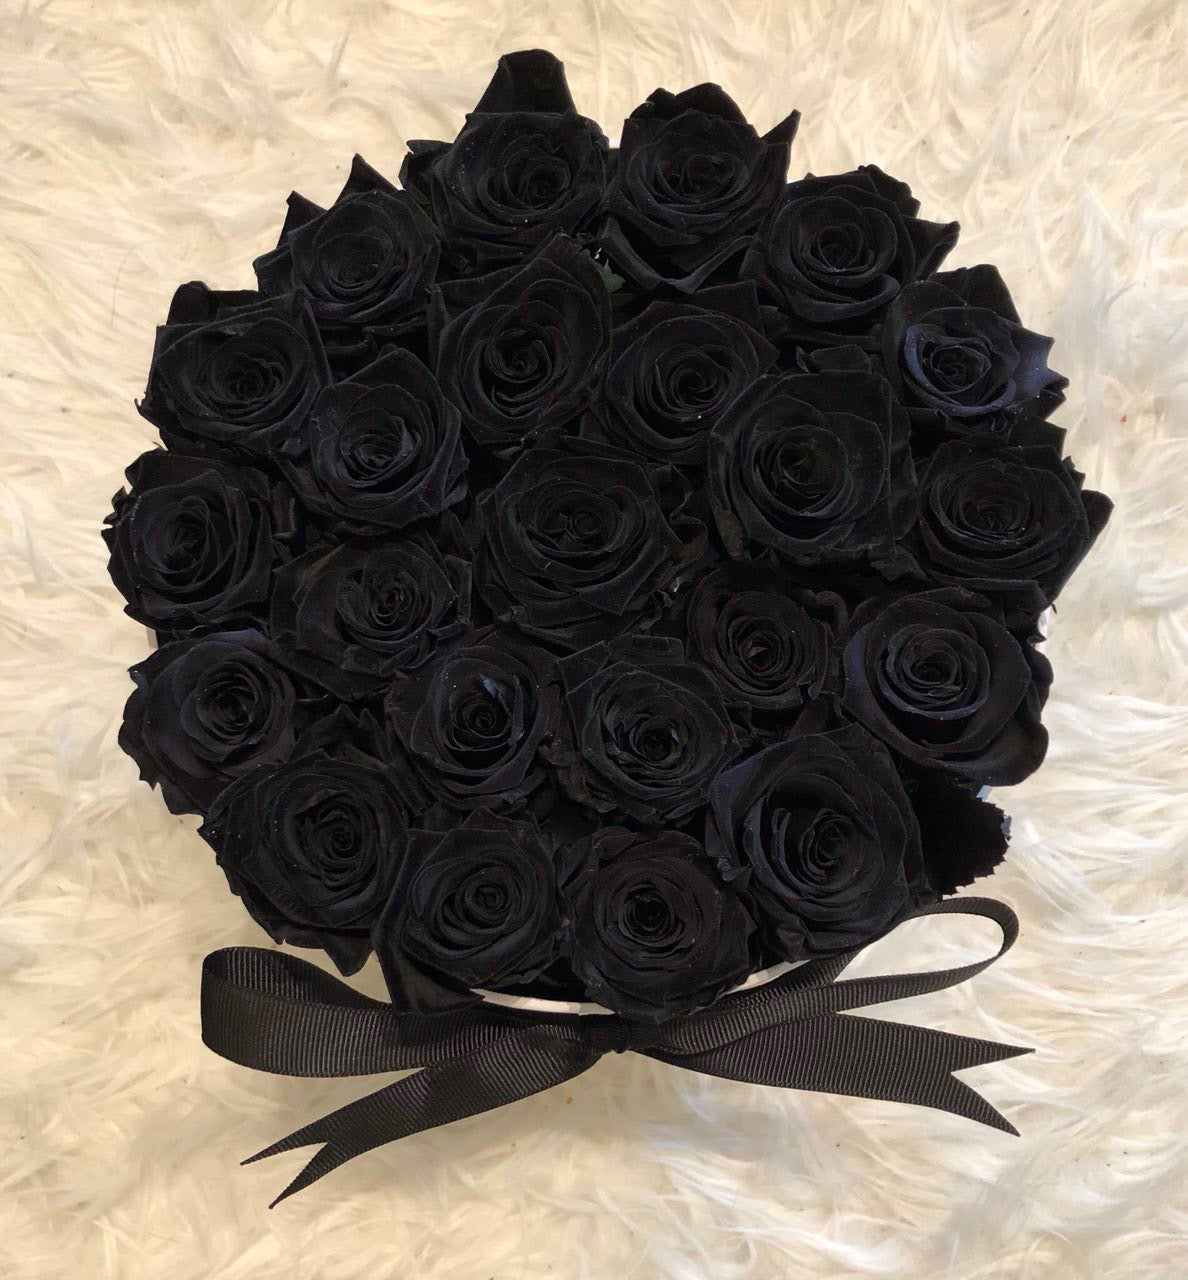 19-23 Black Eternity Roses. Real roses preserved naturally with a proprietary solution to keep them stunningly beautiful for a year or more. No water or direct sunlight needed.